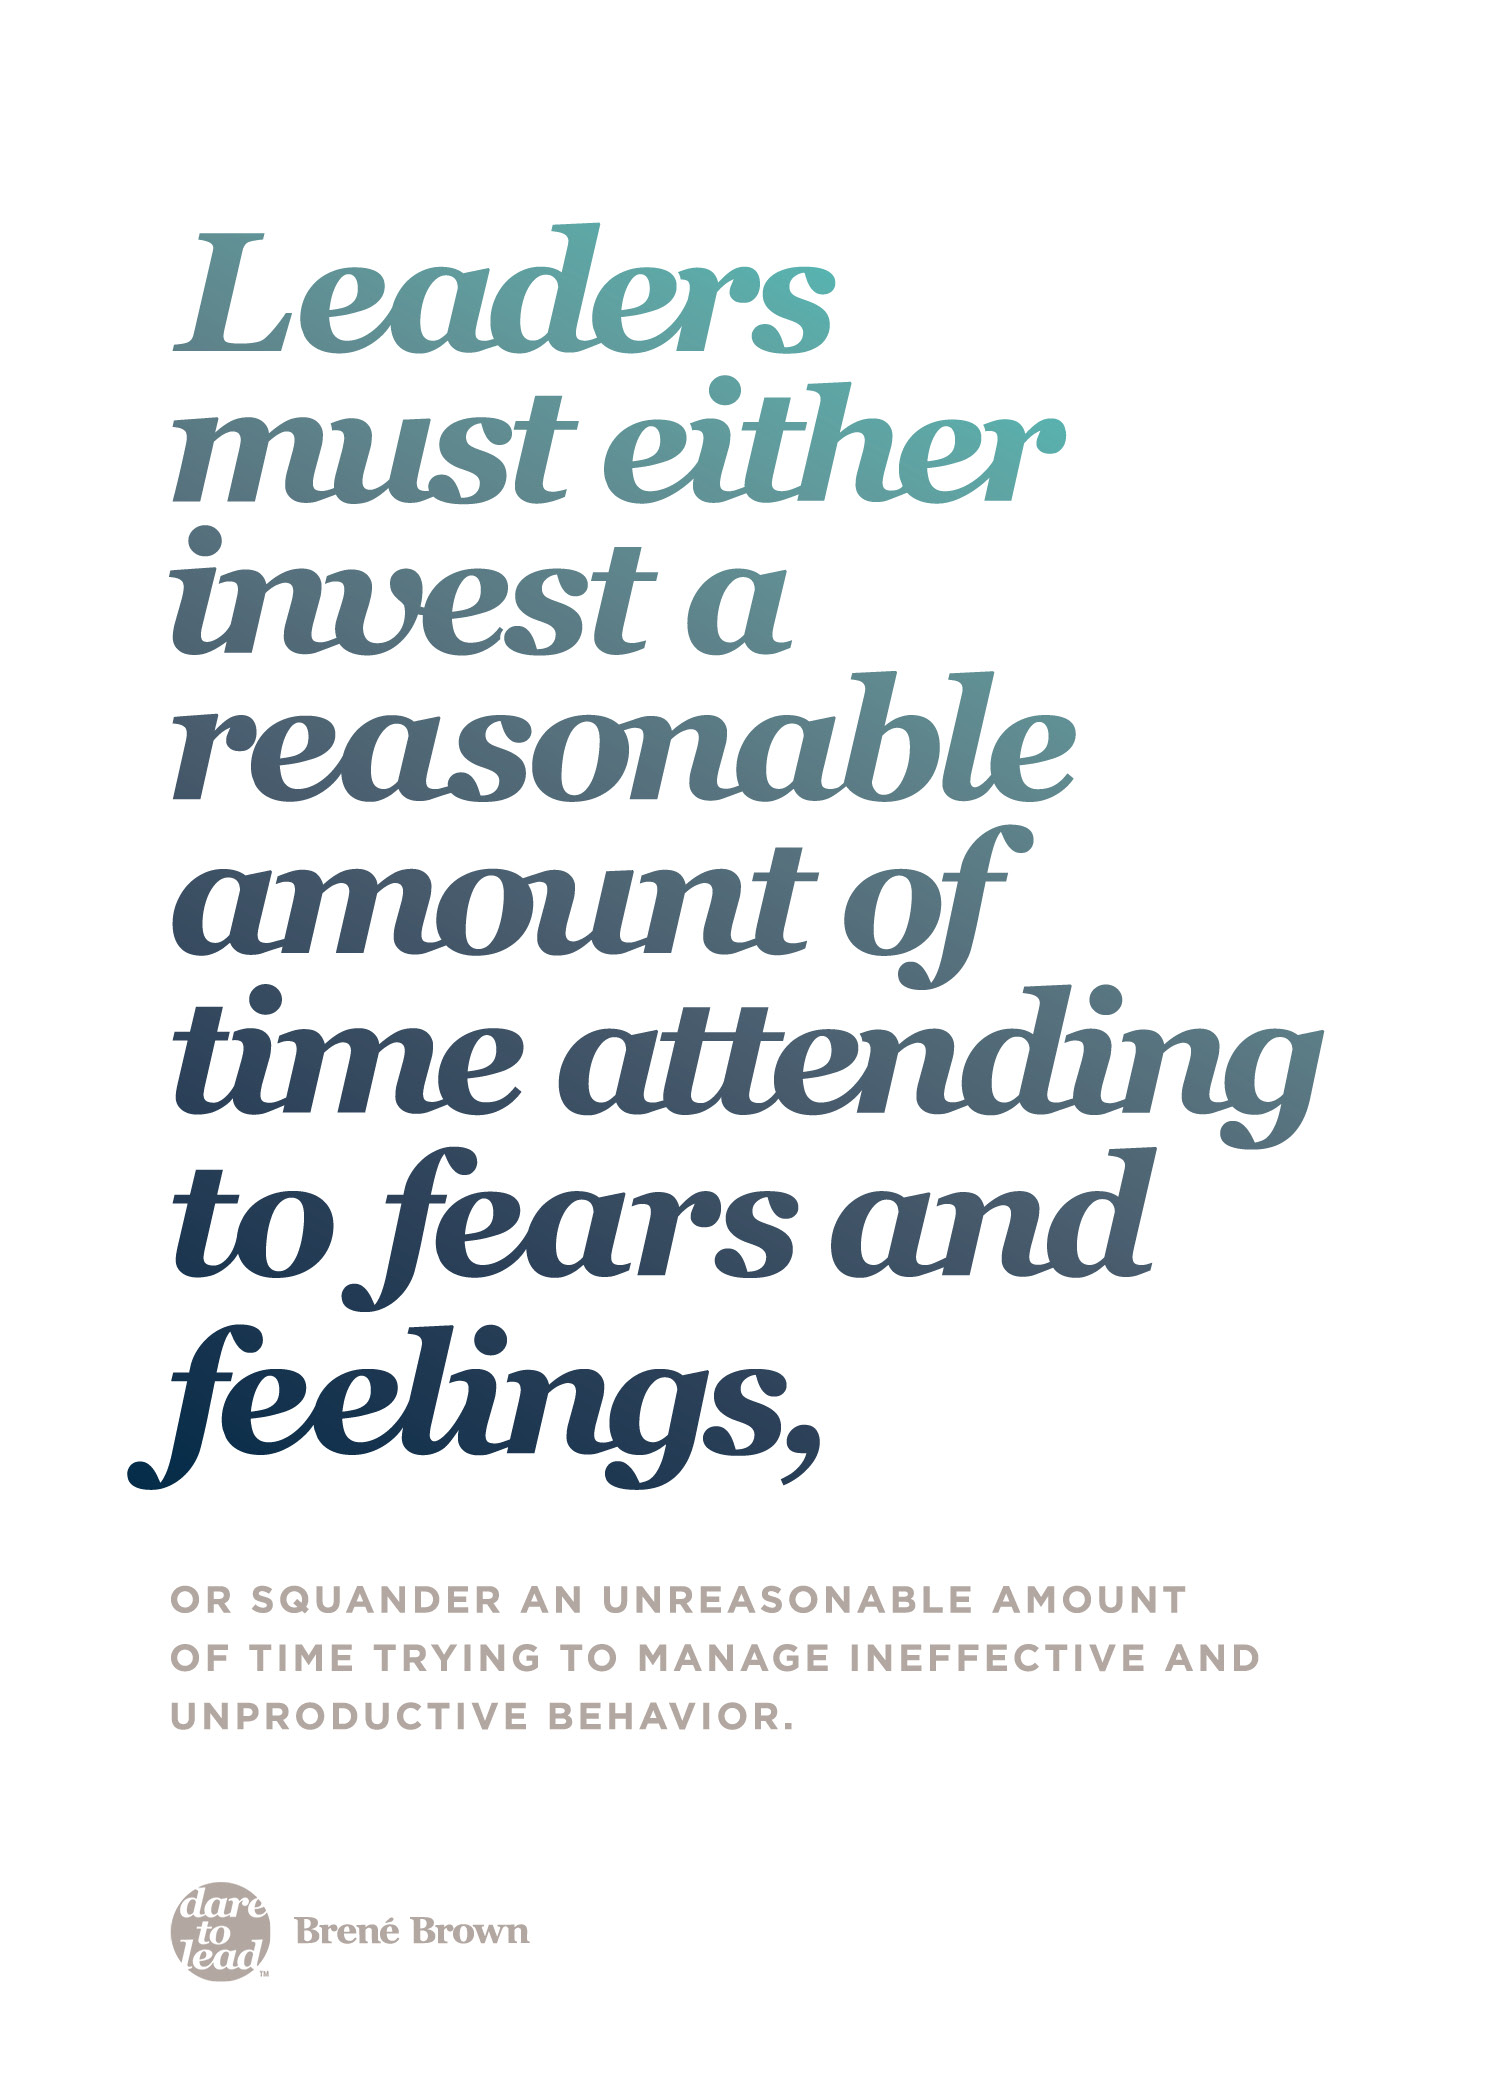 """Leaders must either invest a reasonable amount of time attending to fears and feelings, or squander an unreasonable amount of time trying to manage ineffective and unproductive behavior."" - Brené Brown"